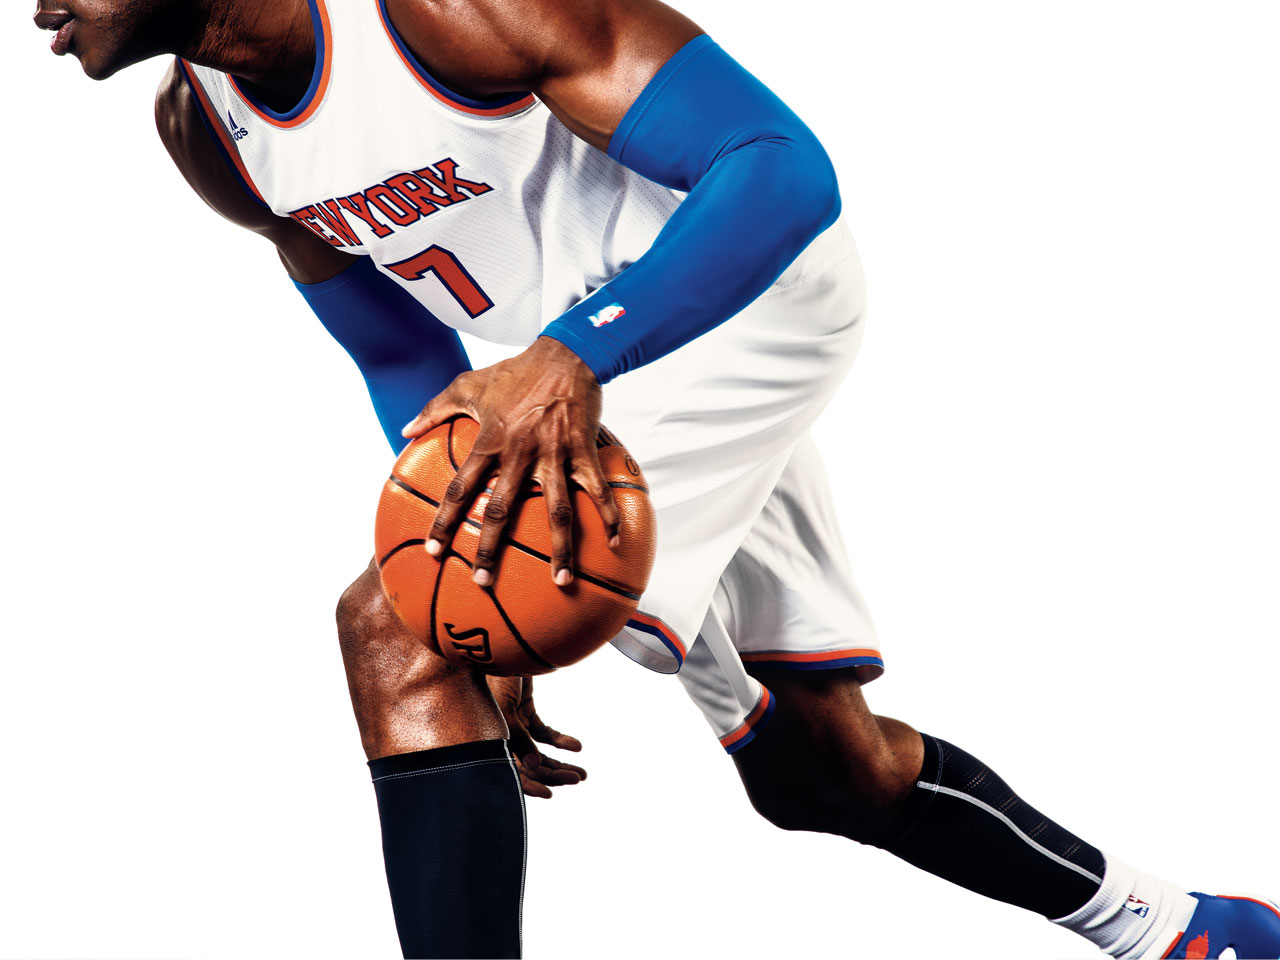 NBA legs circuit for explosive power recommendations